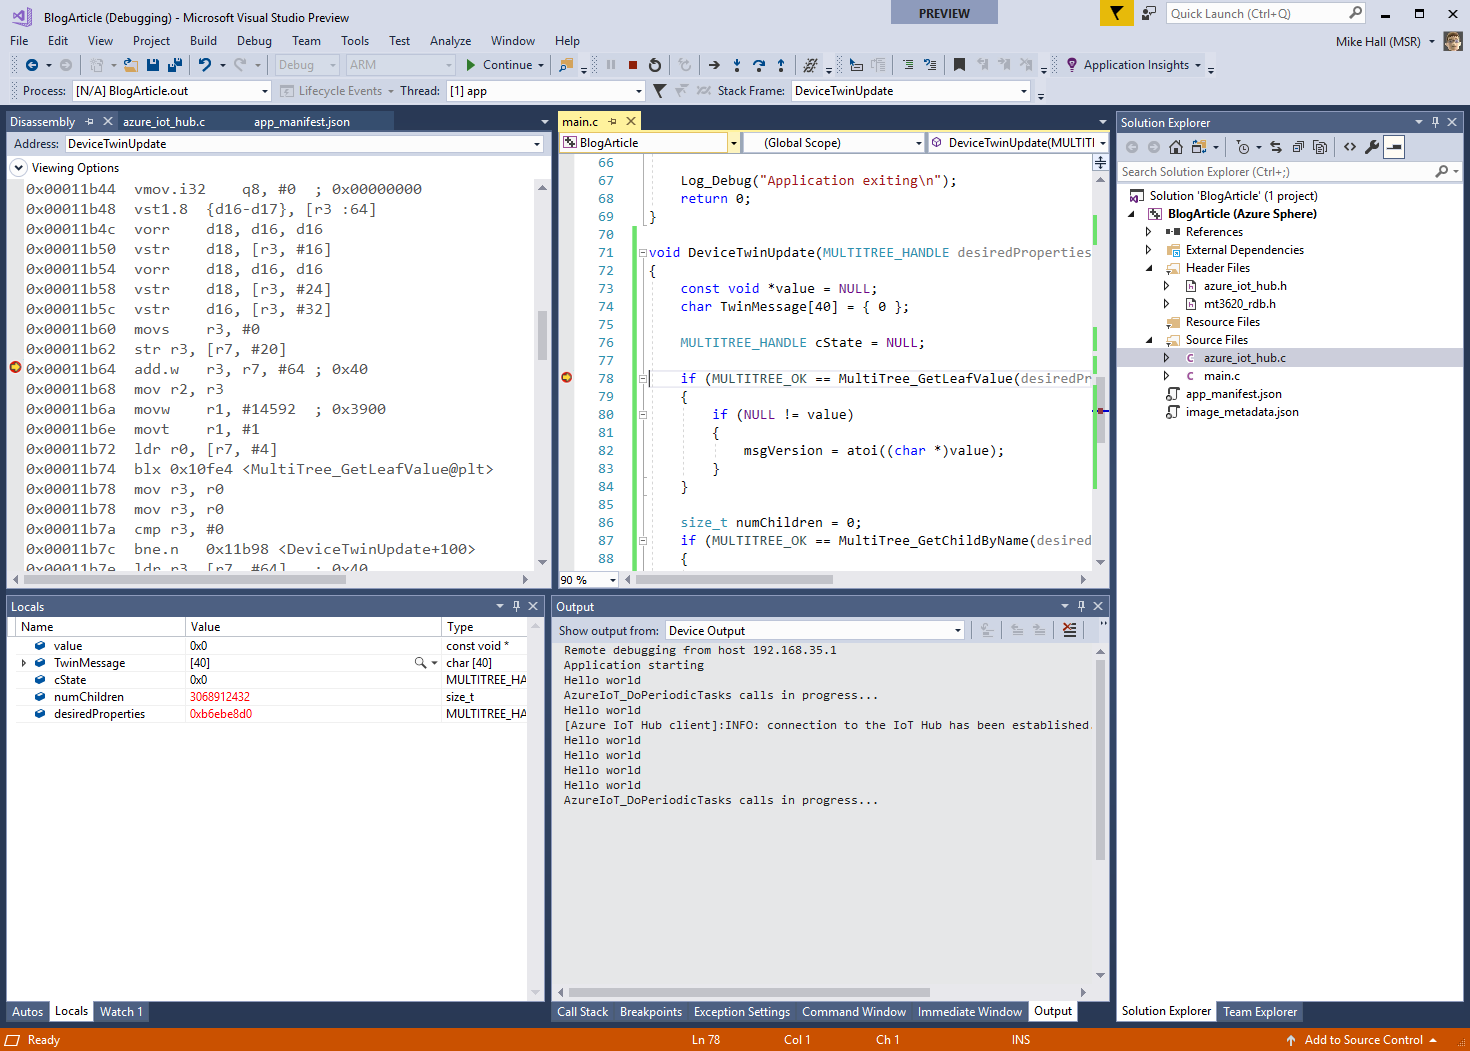 Visual Studio actively debugging an Azure Sphere application